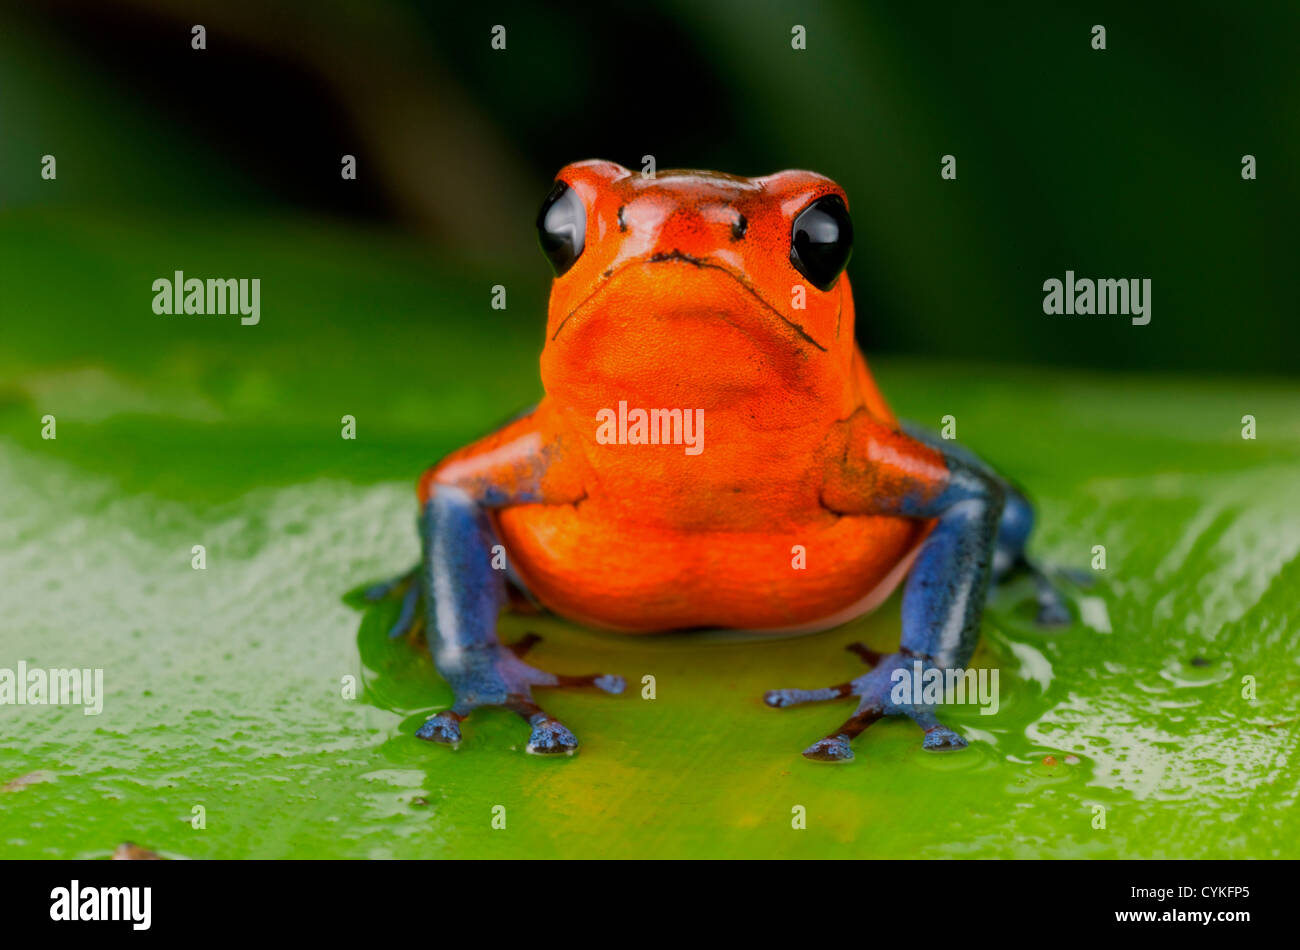 Strawberry poison frog or strawberry poison-dart frog (Oophaga pumilio), Costa Rica. - Stock Image